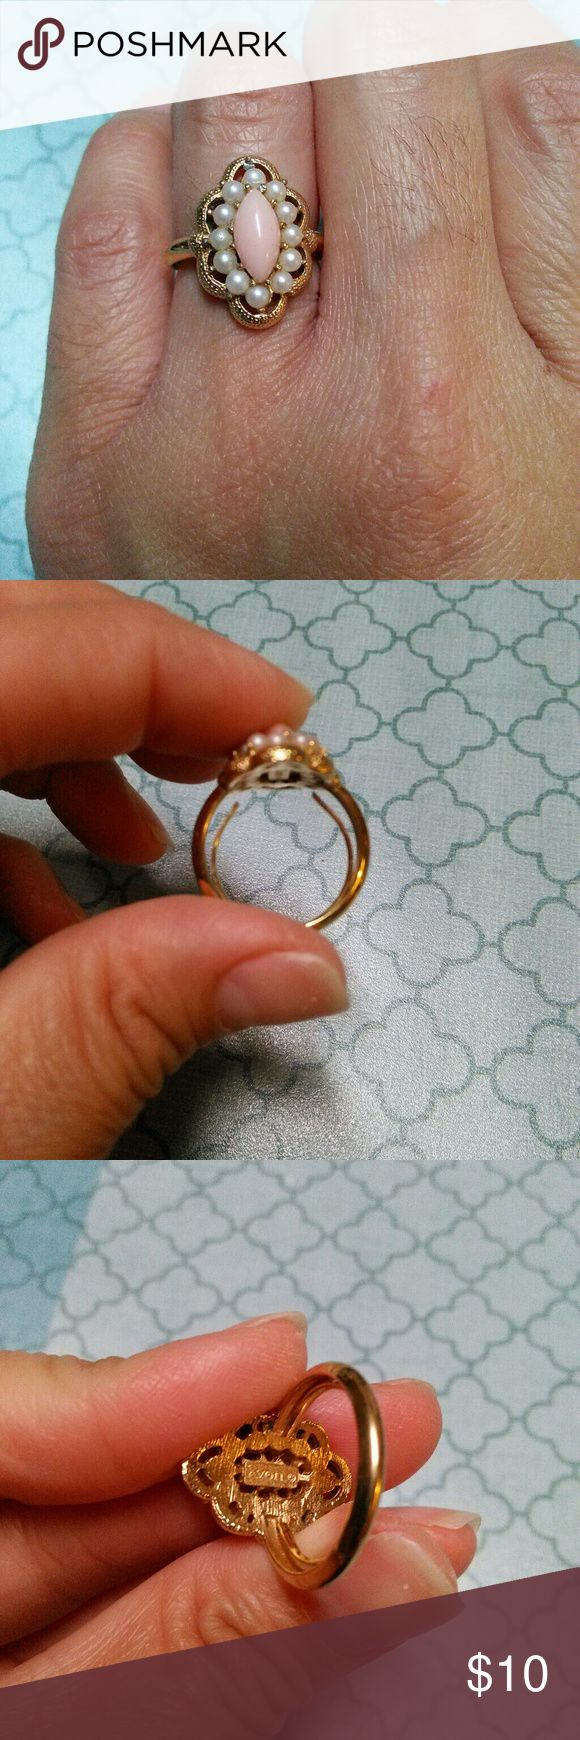 Vintage AVON RING Cute dainty ring with an in adjustable size adjuster in the center as shown...Can fit a smaller size or 7 Jewelry Rings